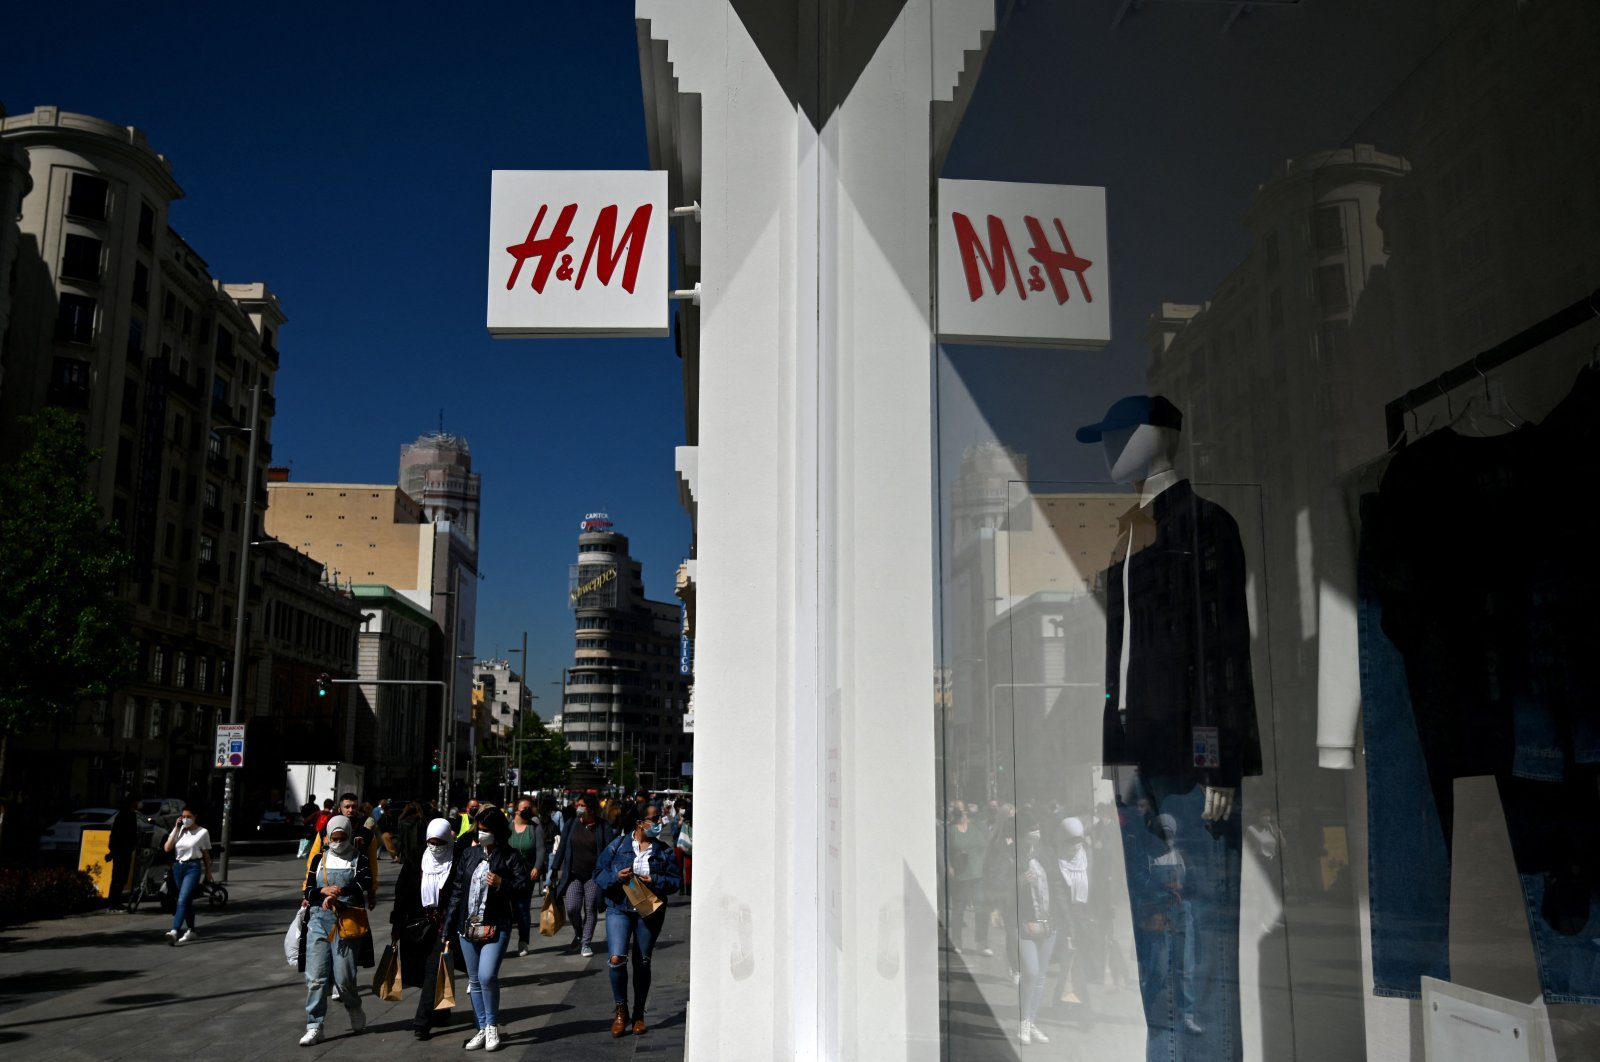 The logo of Swedish fashion retailer H&M is pictured outside a store in Madrid, Spain, April 6, 2021. (AFP Photo)